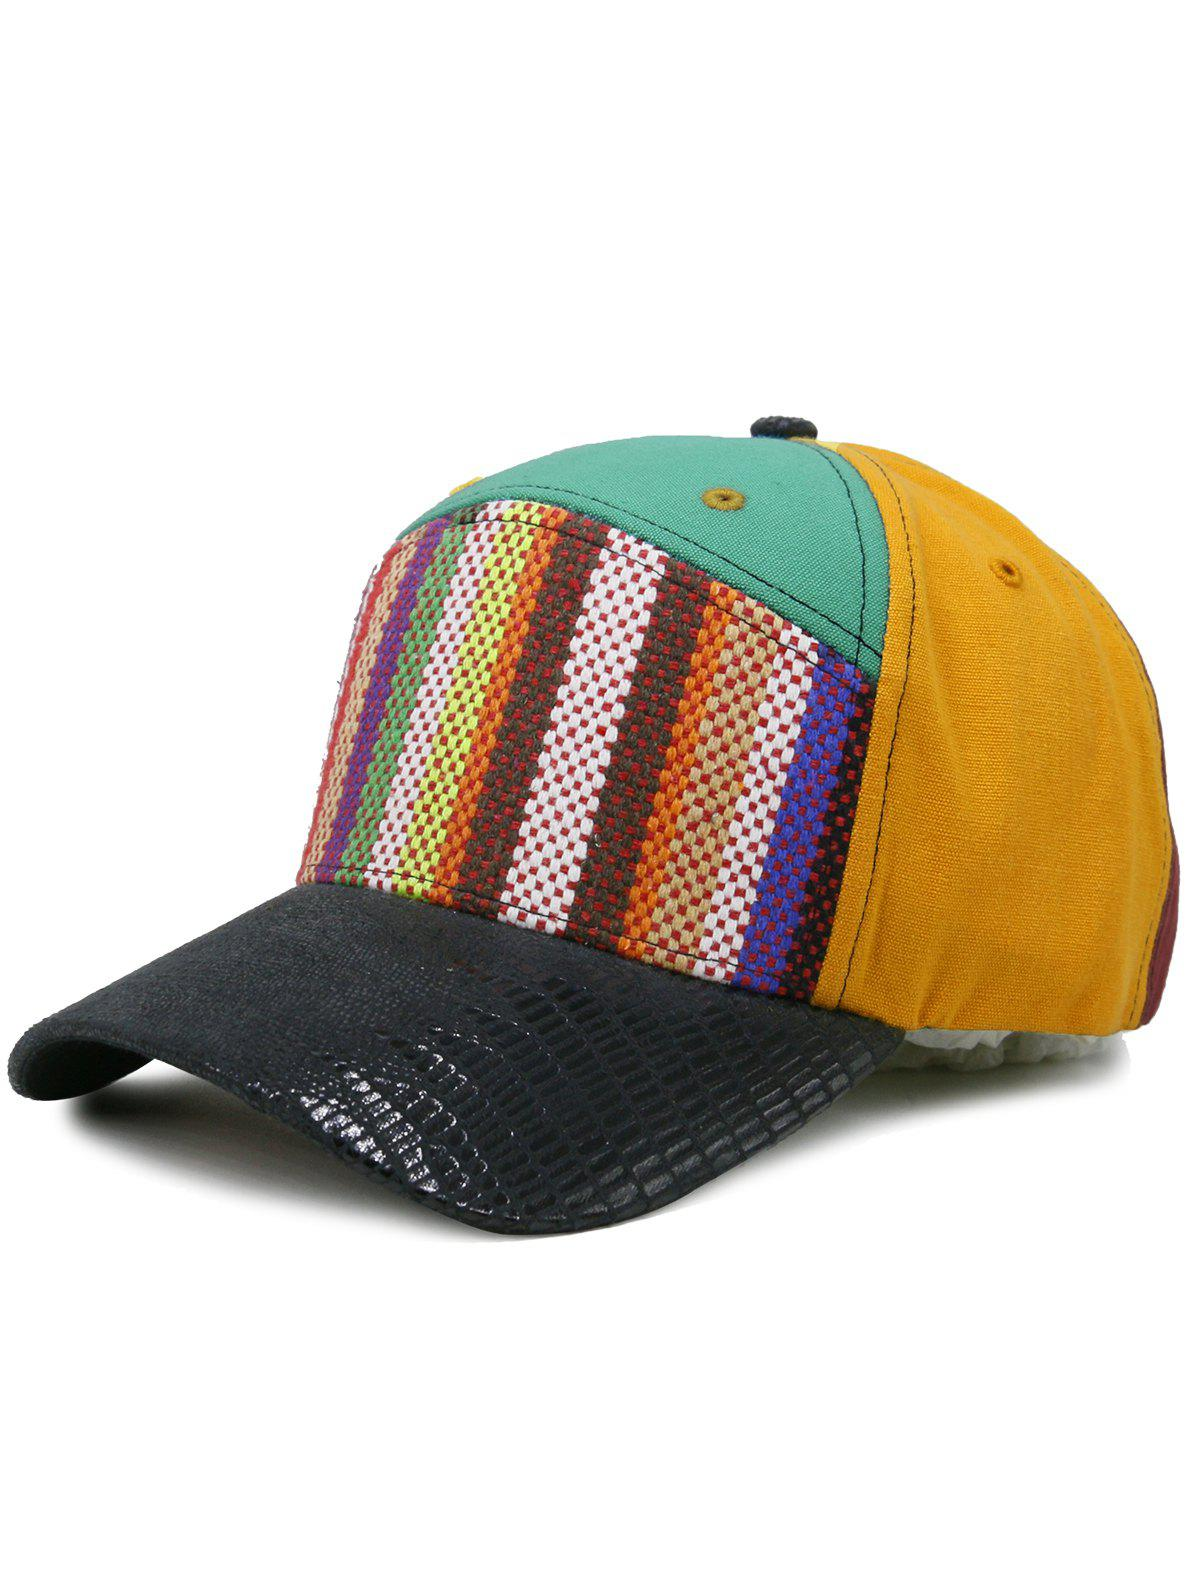 Store Line Embroidery Colored Baseball Cap